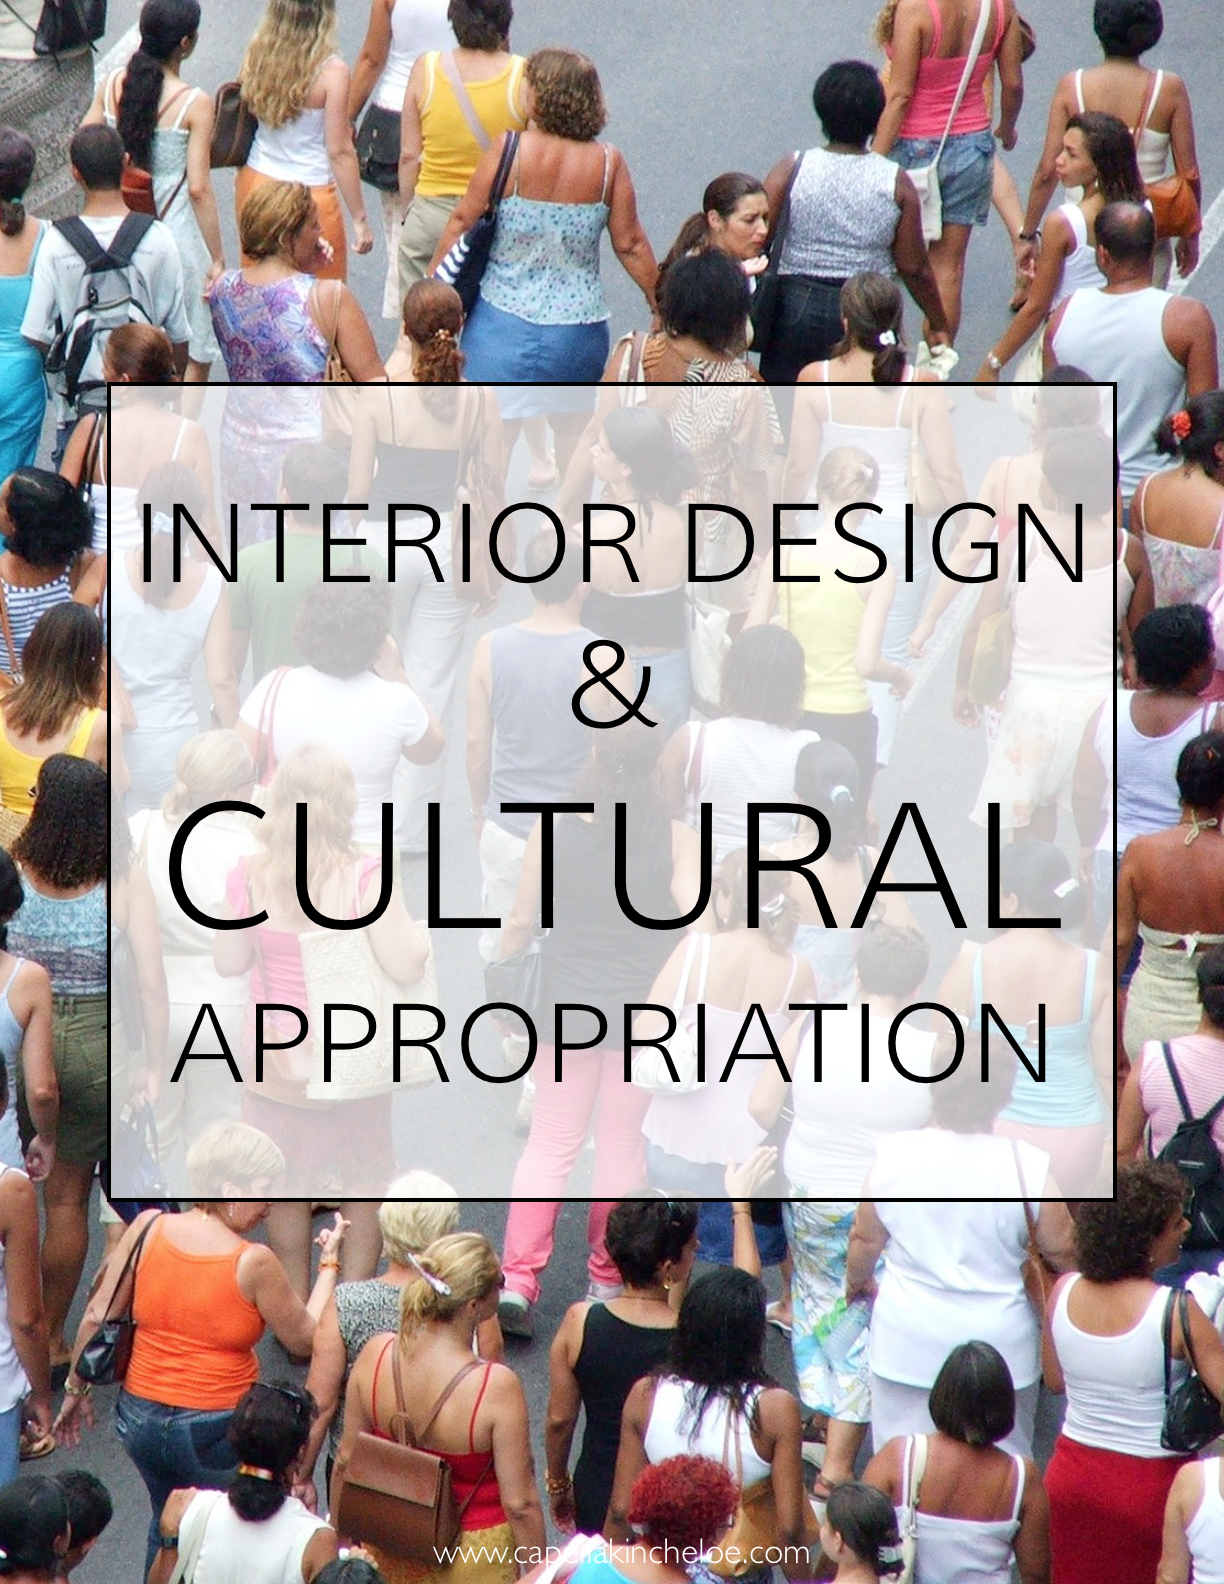 Are you hurting or helping? #culturalappropriation #interiordesignbusiness